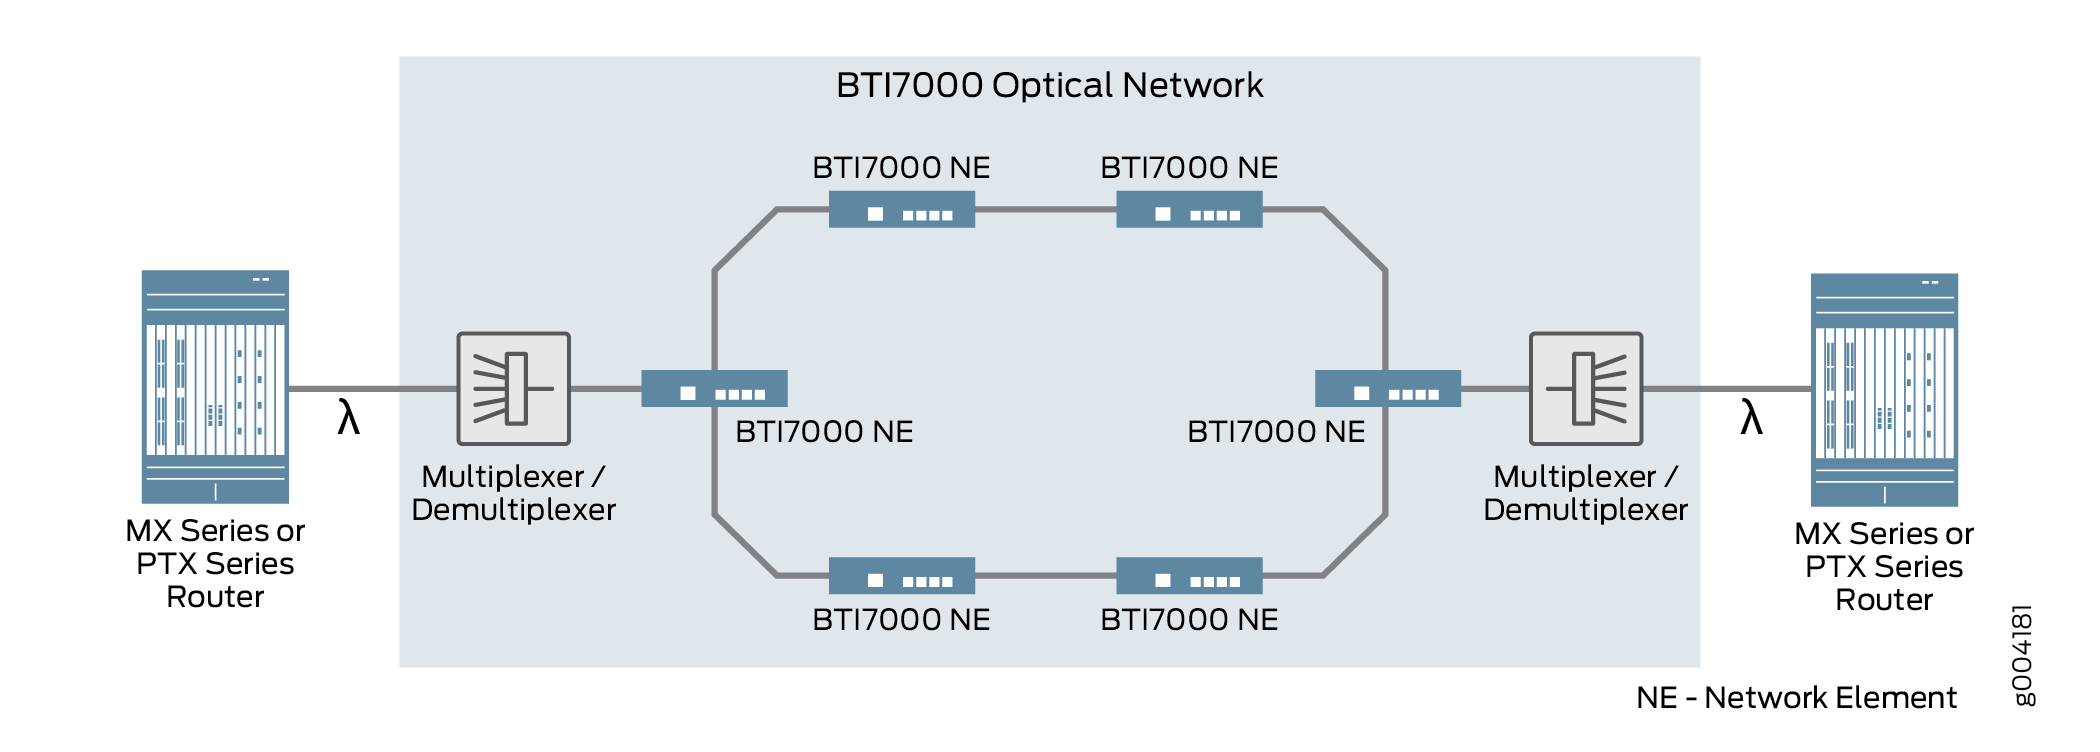 Optical Service Between Device Endpoints